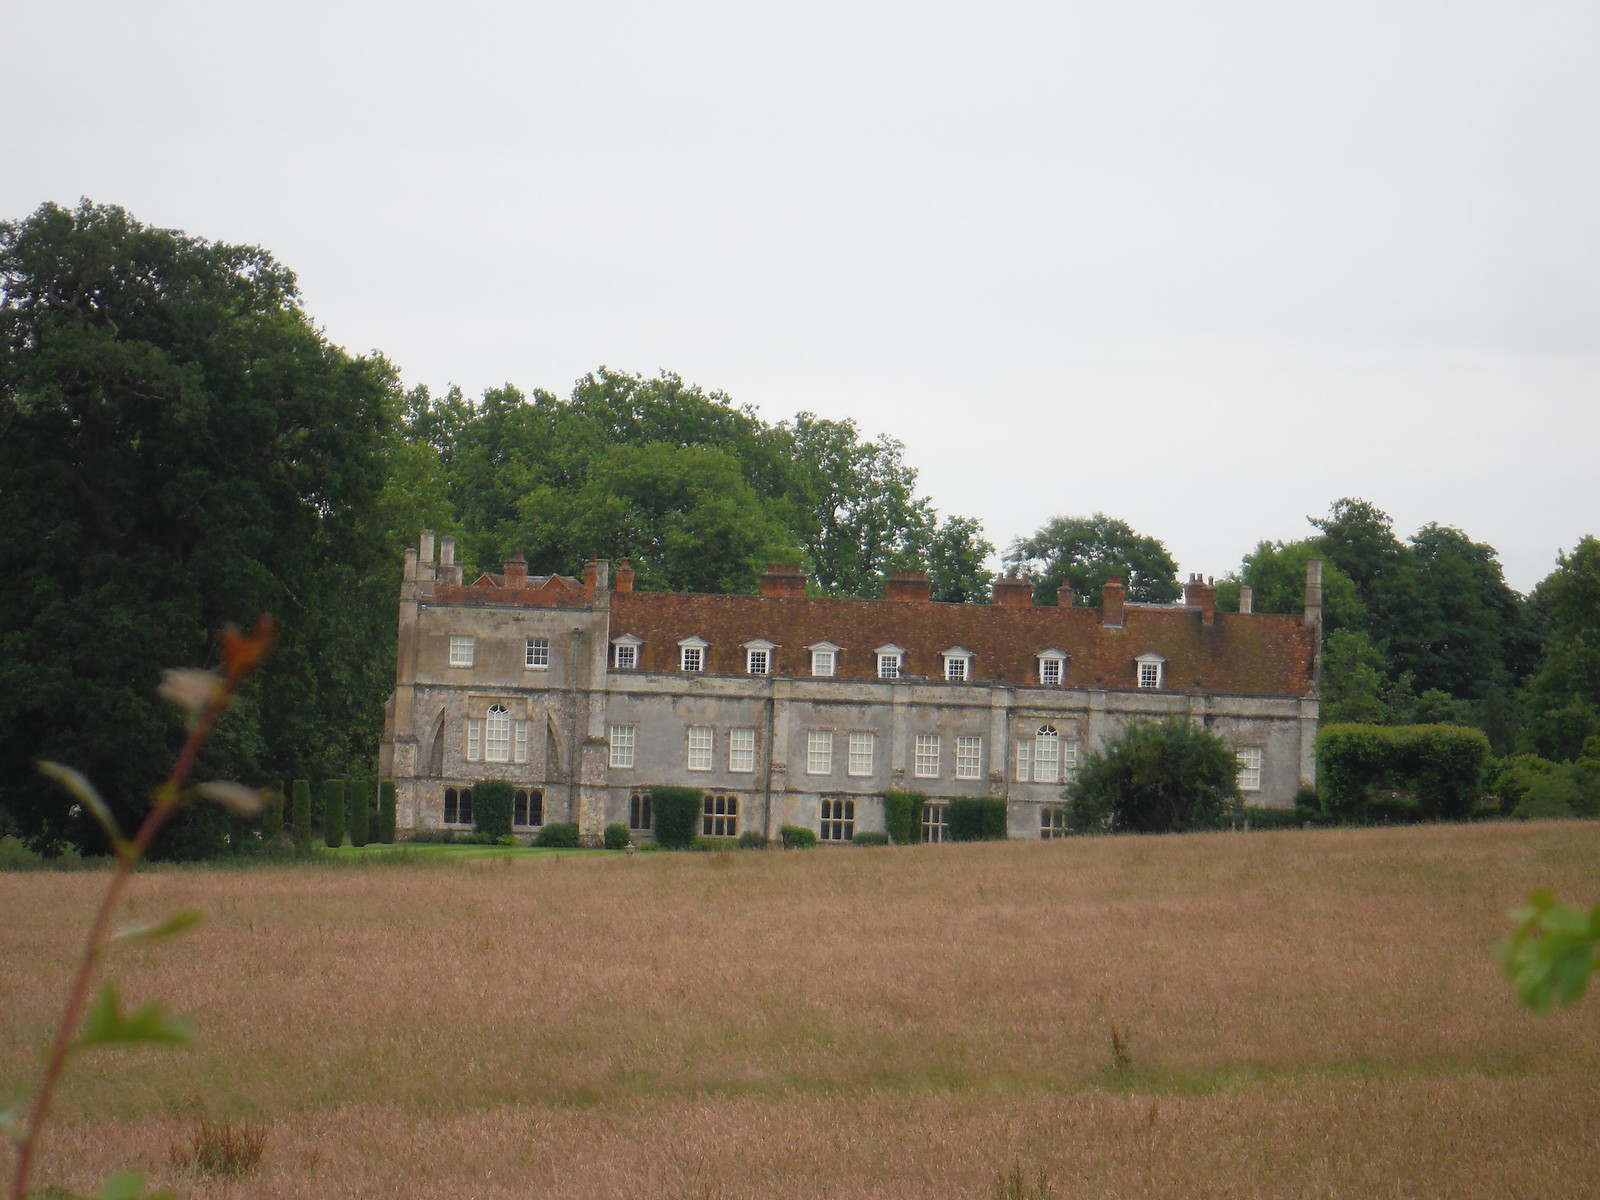 Mottisfont Abbey (rear view) SWC Walk 265 - Dean to Mottisfont and Dunbridge